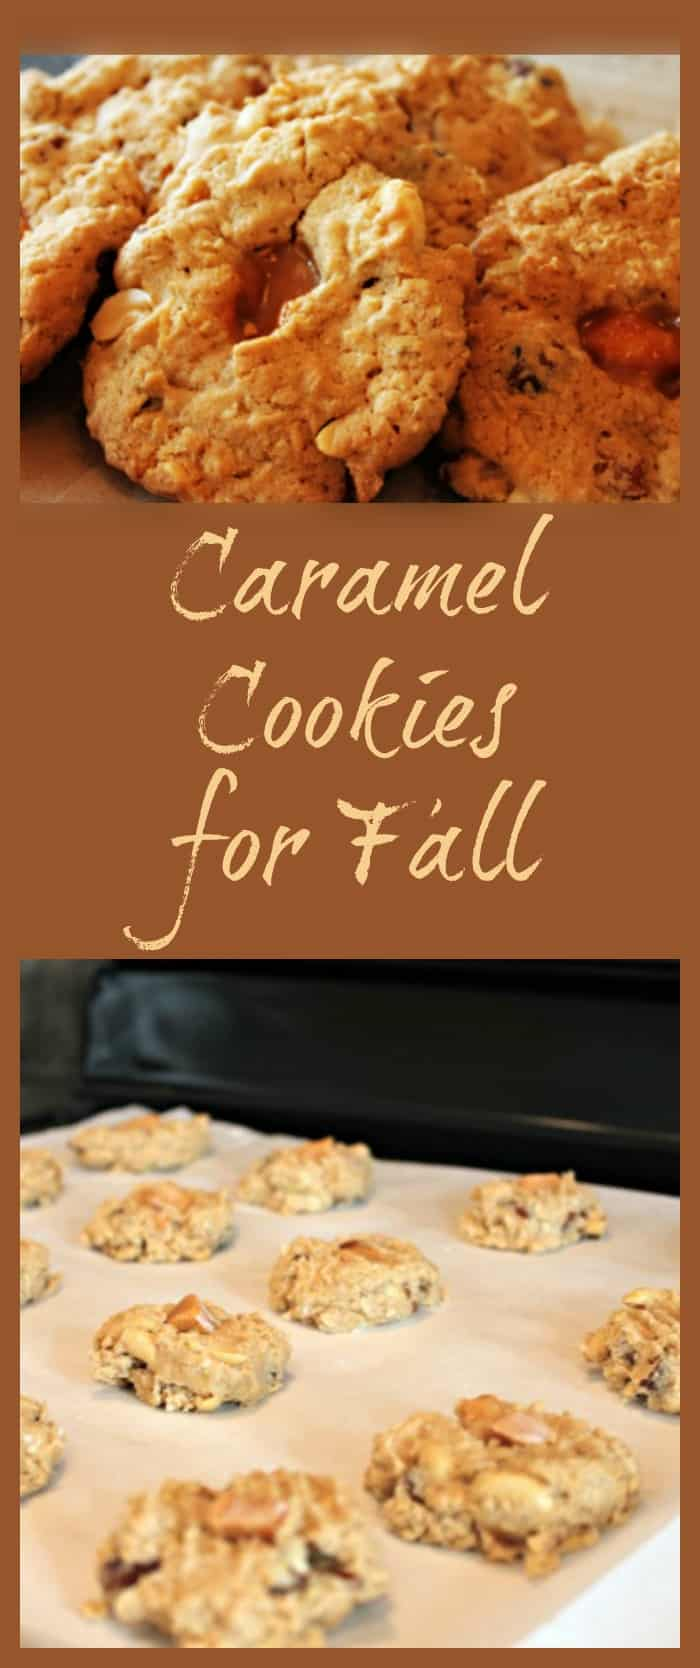 Caramel, Cookies, Baking, Fall